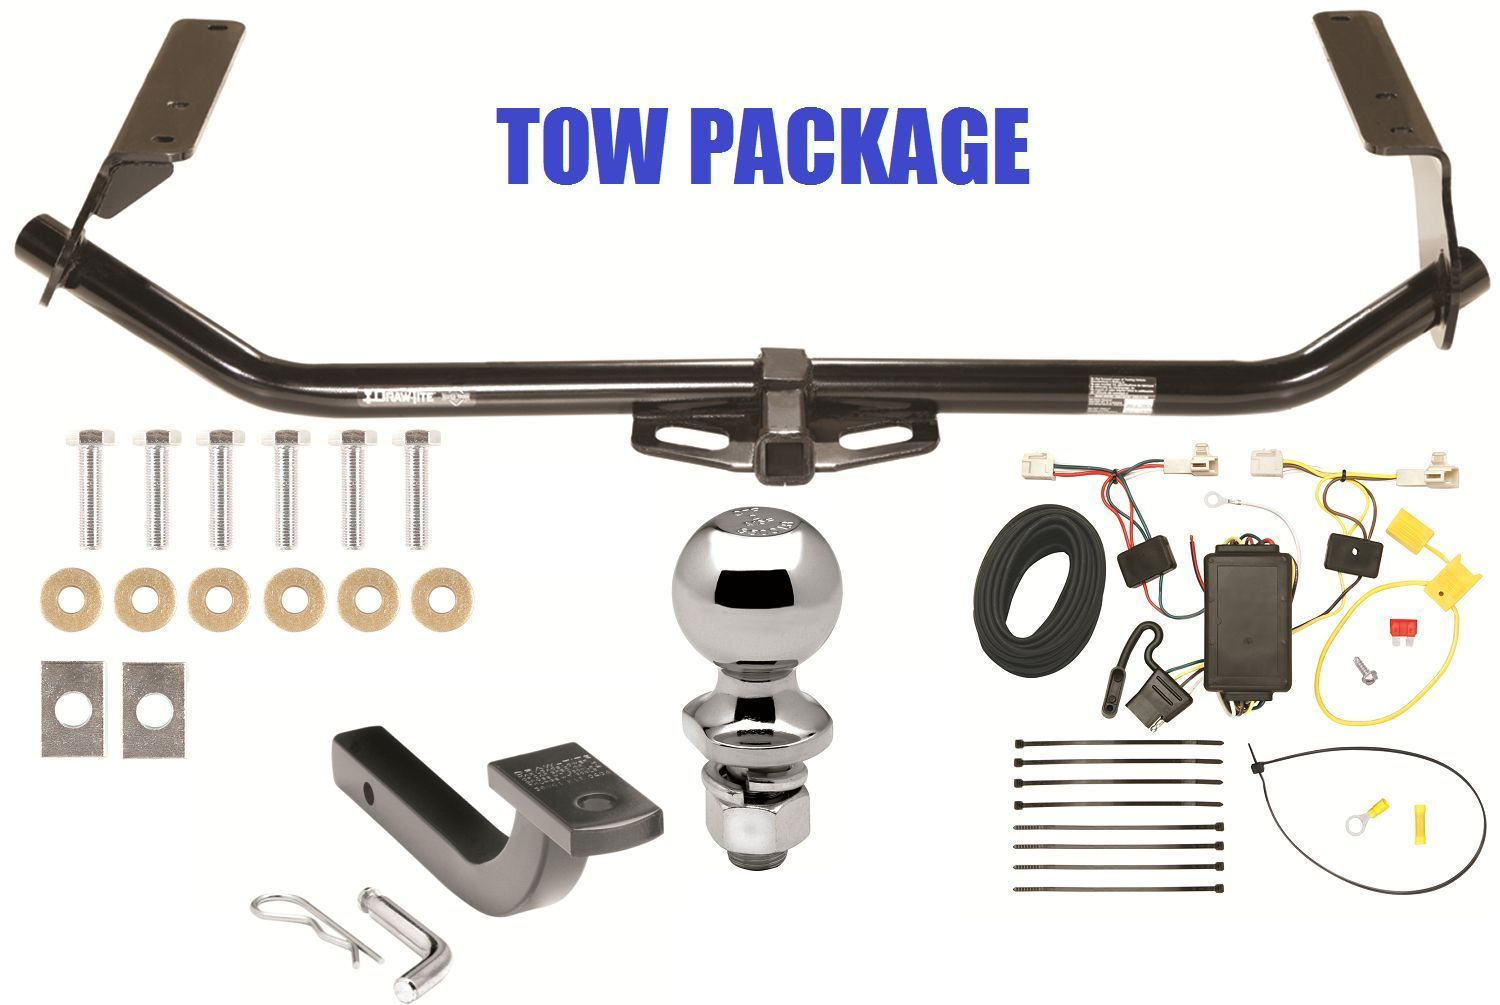 toyota trailer hitch 174 listingscomplete trailer hitch tow package for 09 16 toyota venza class 2 tow receiver $233 01